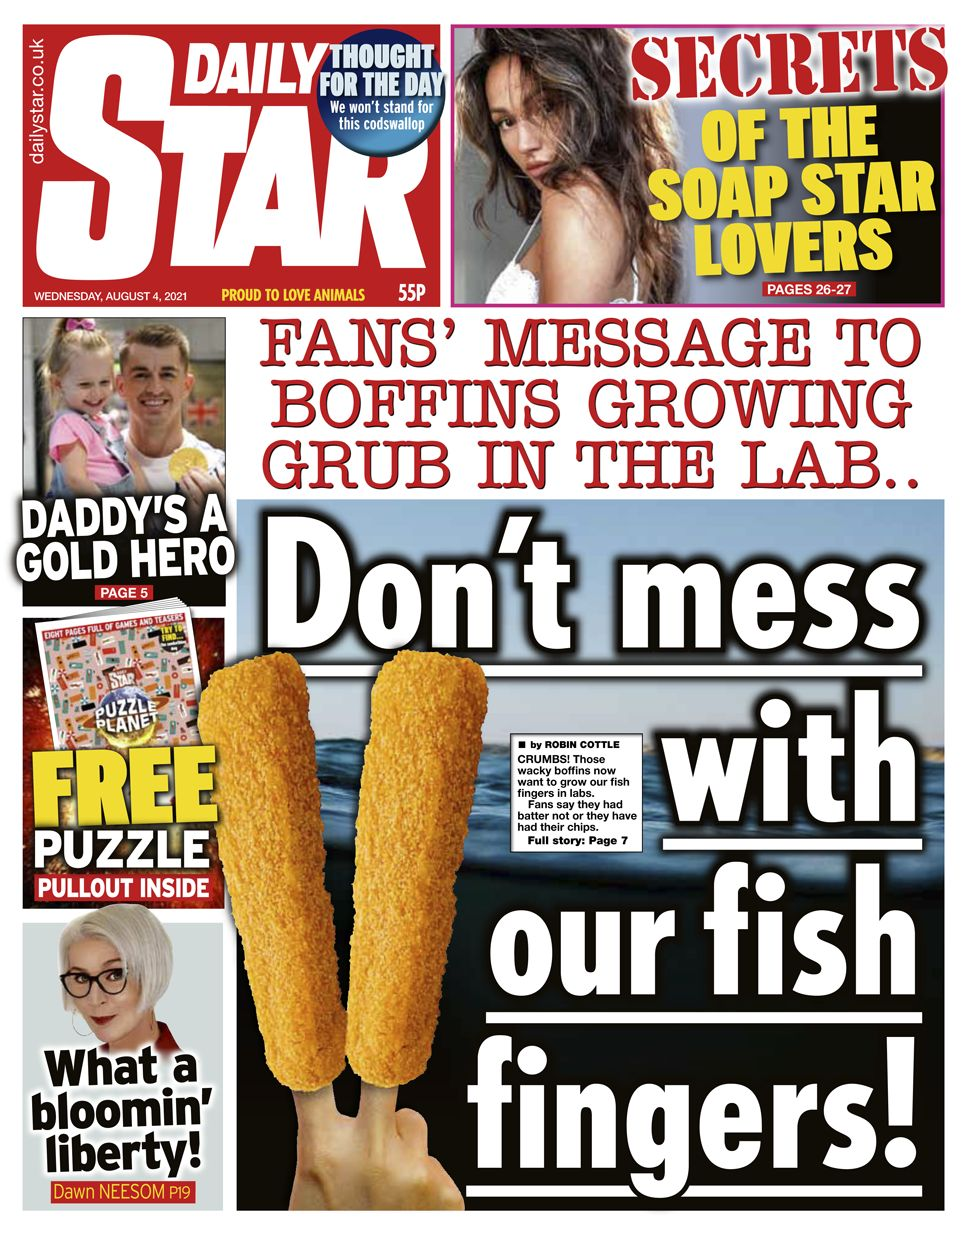 Daily Star - 04/08/21